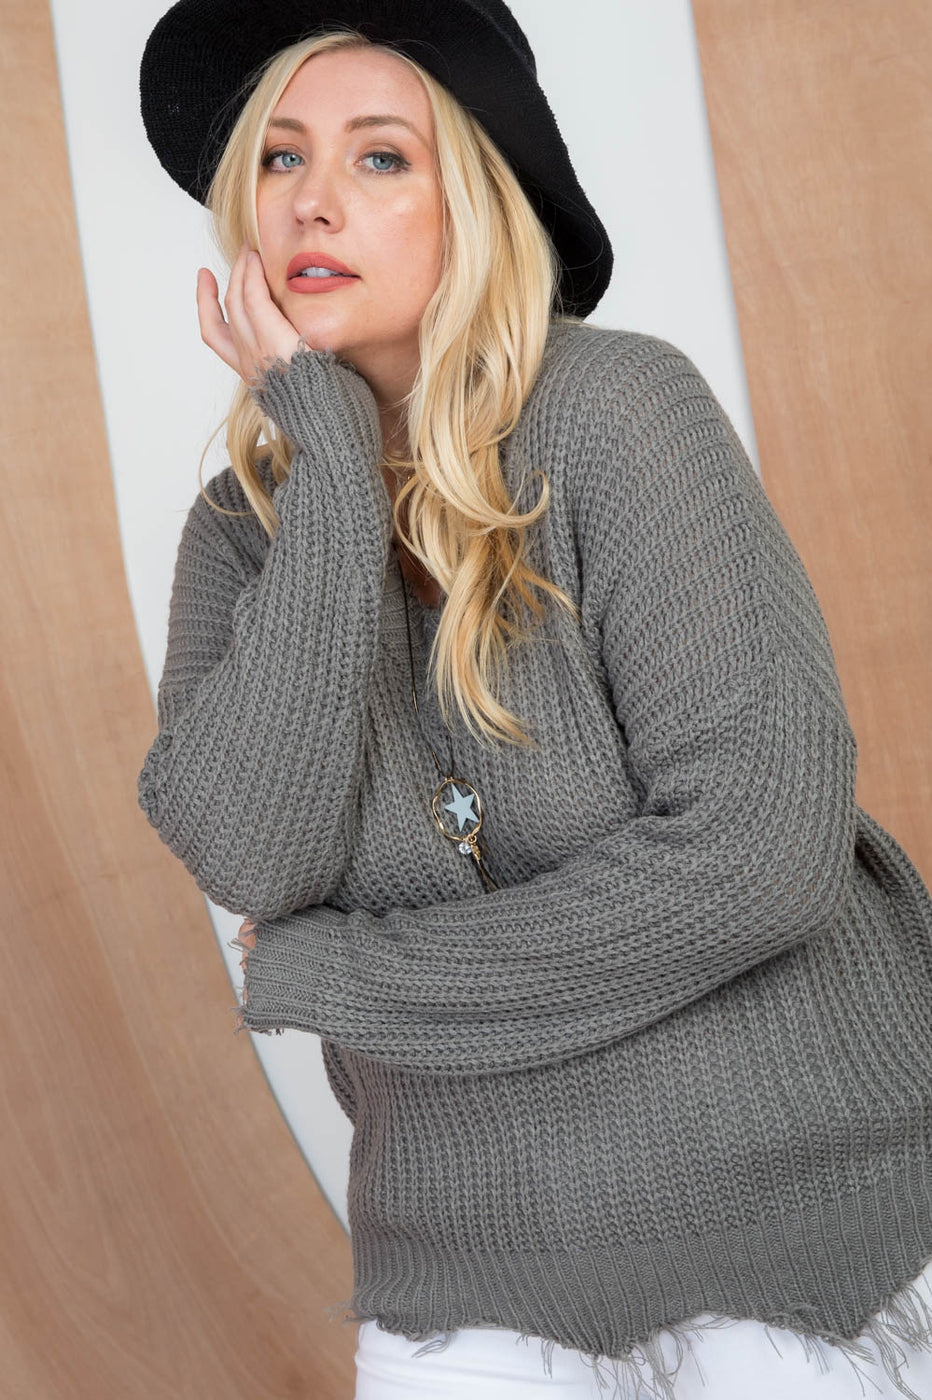 Sedona Sage Plus Size Sweater With Frayed V Neck Siin Bees